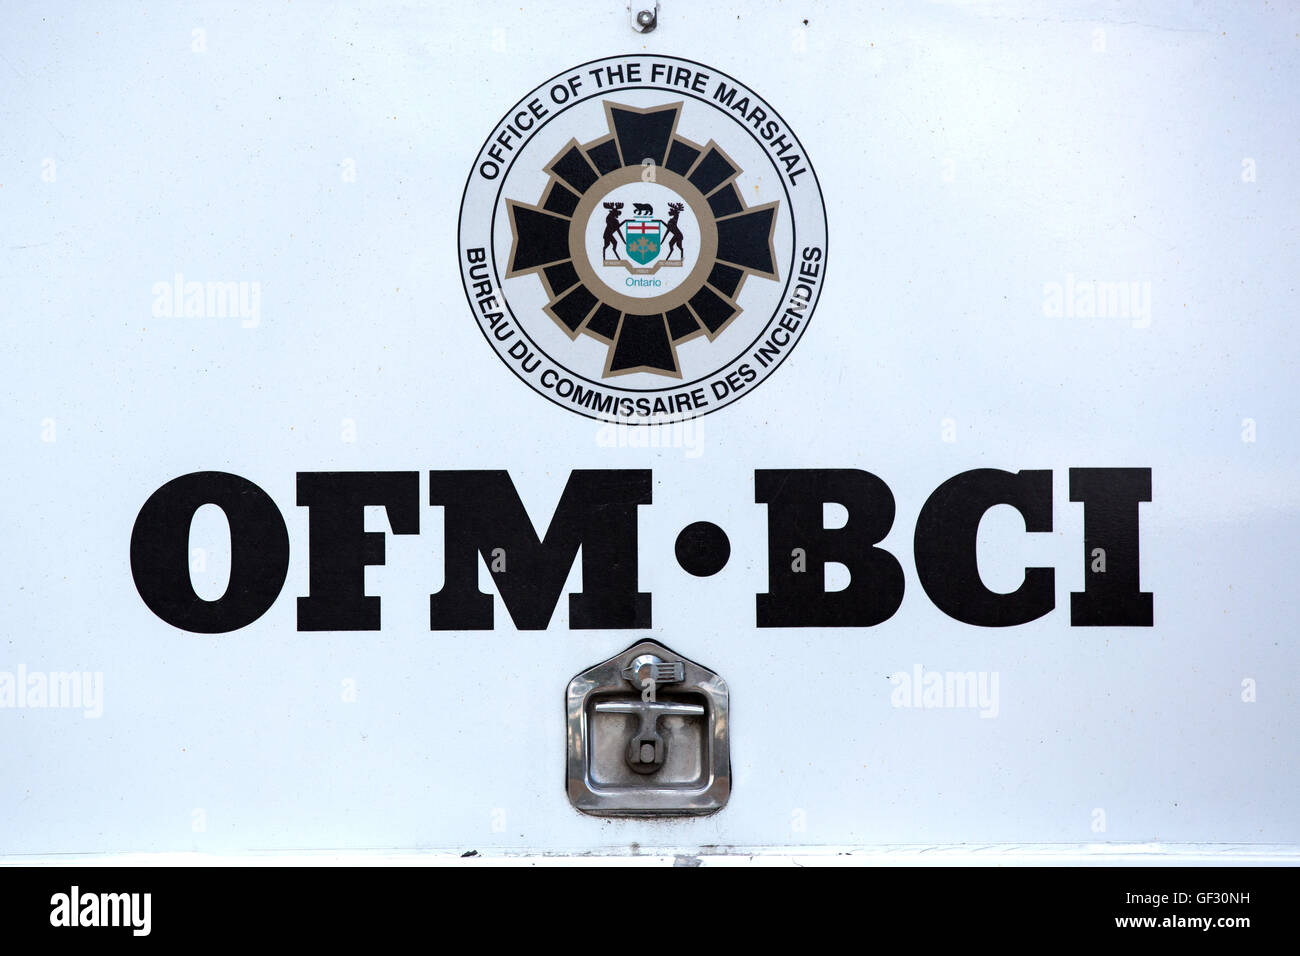 Ontario Fire Marshal in Amherstview, Ont., on July 17, 2016. - Stock Image